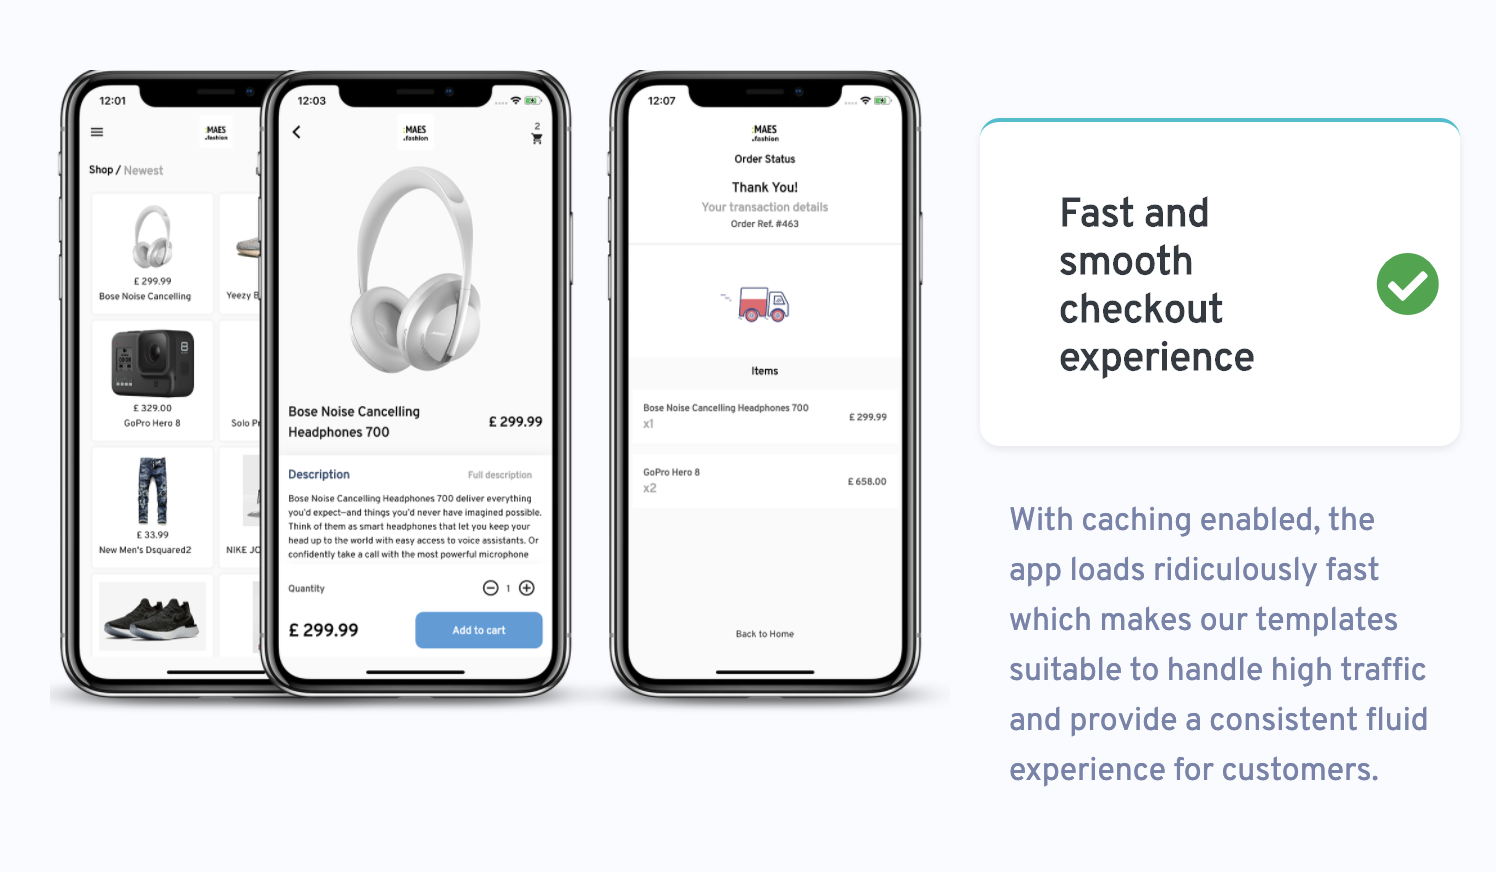 WooMobile - Flutter WooCommerce App Template for IOS and Android - 1